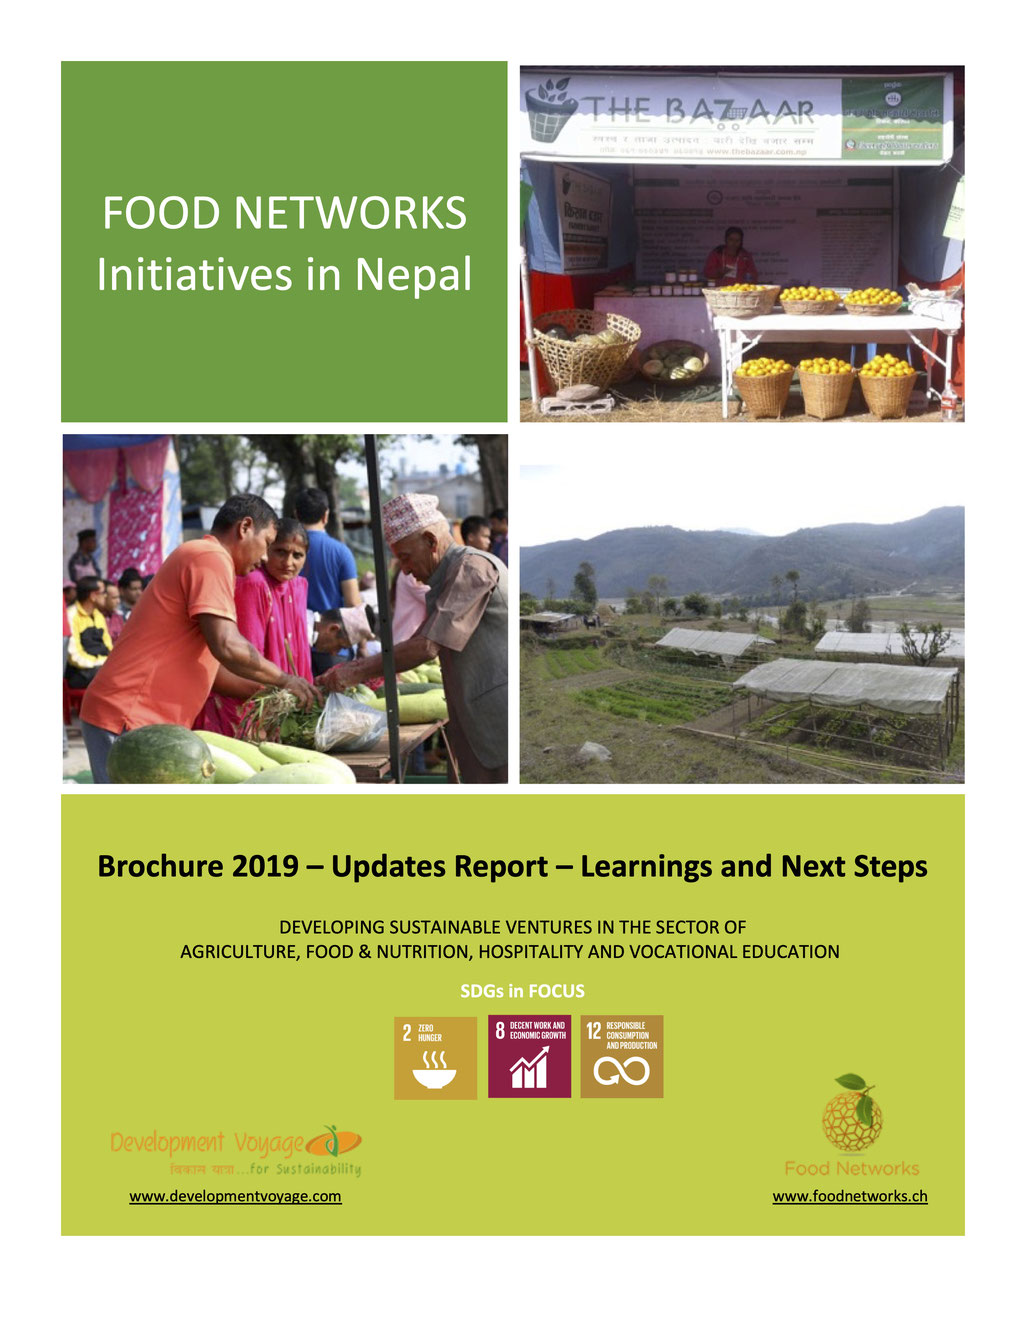 Food Networks Initiatives in Nepal - Update Report 2019